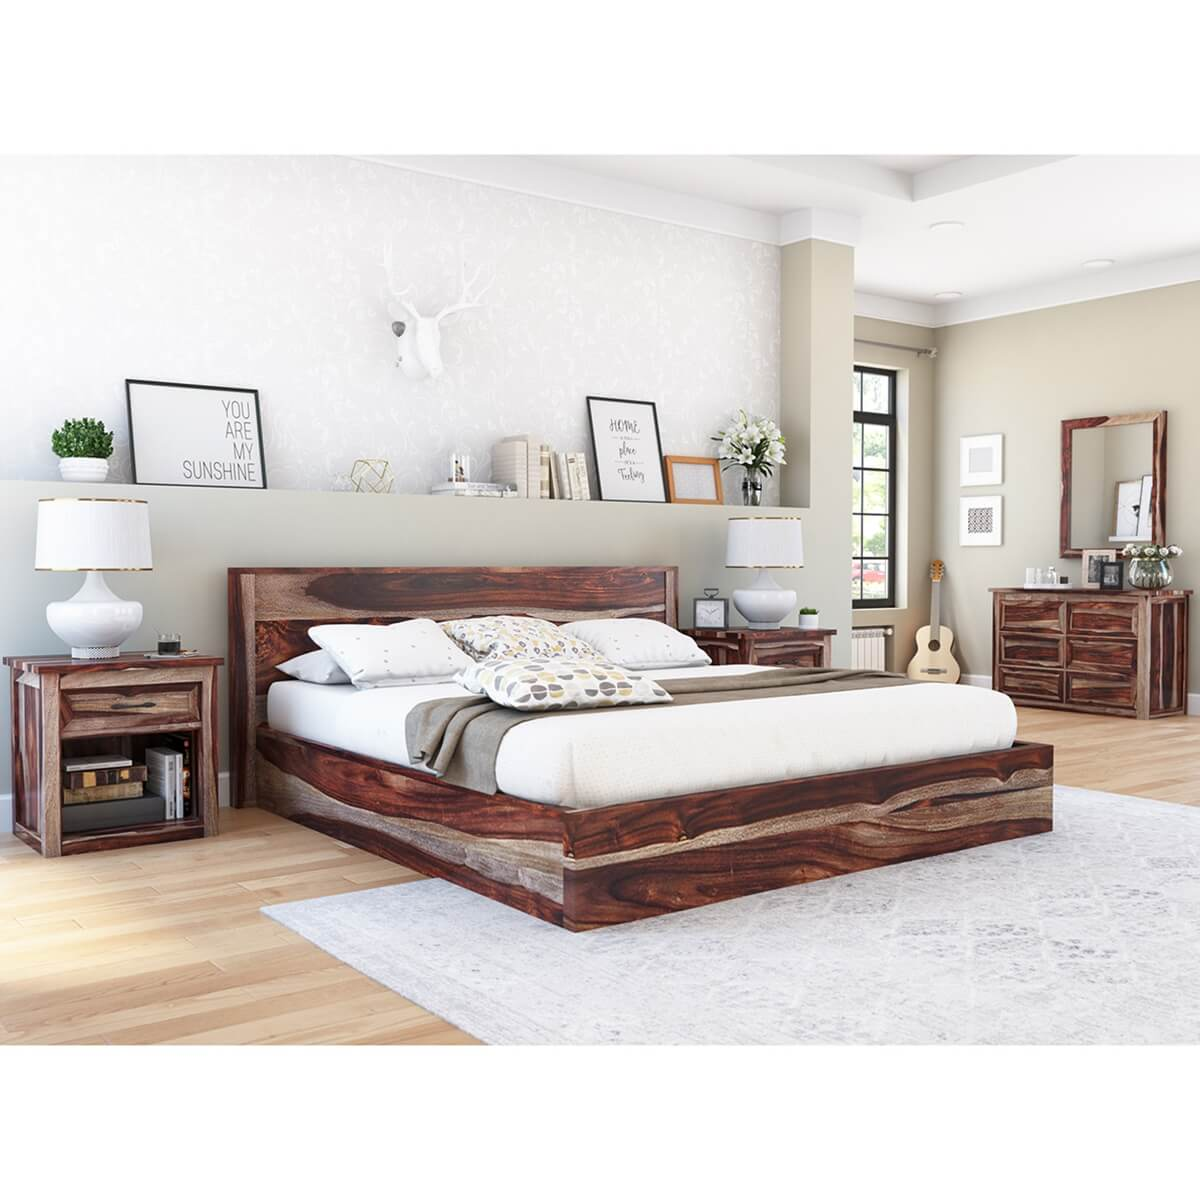 Jamaica 5 Piece Bedroom Set